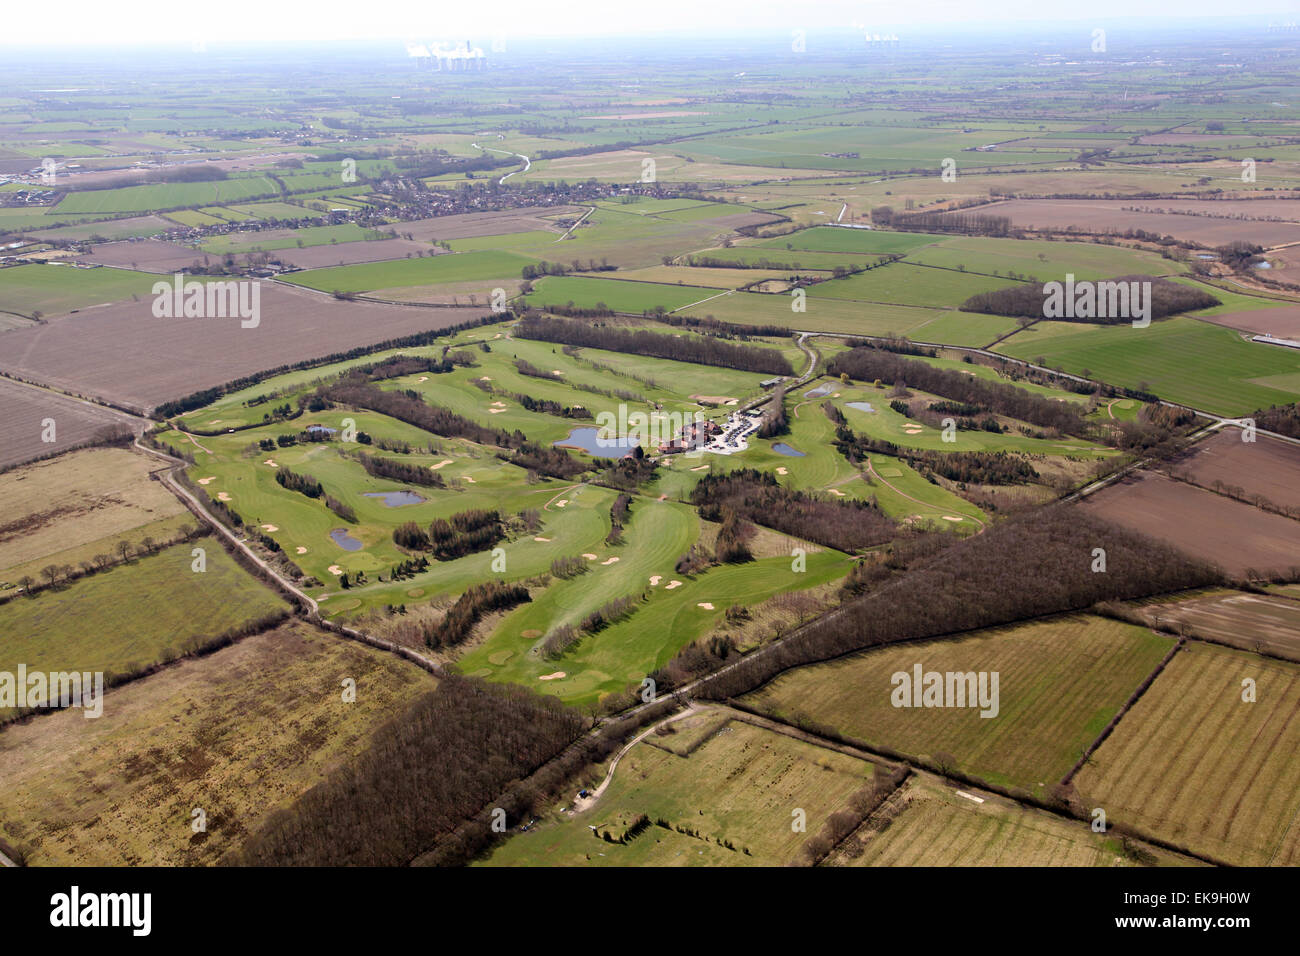 aerial view of The Oaks Golf Club & Spa, Aughton, North Yorkshire - Stock Image